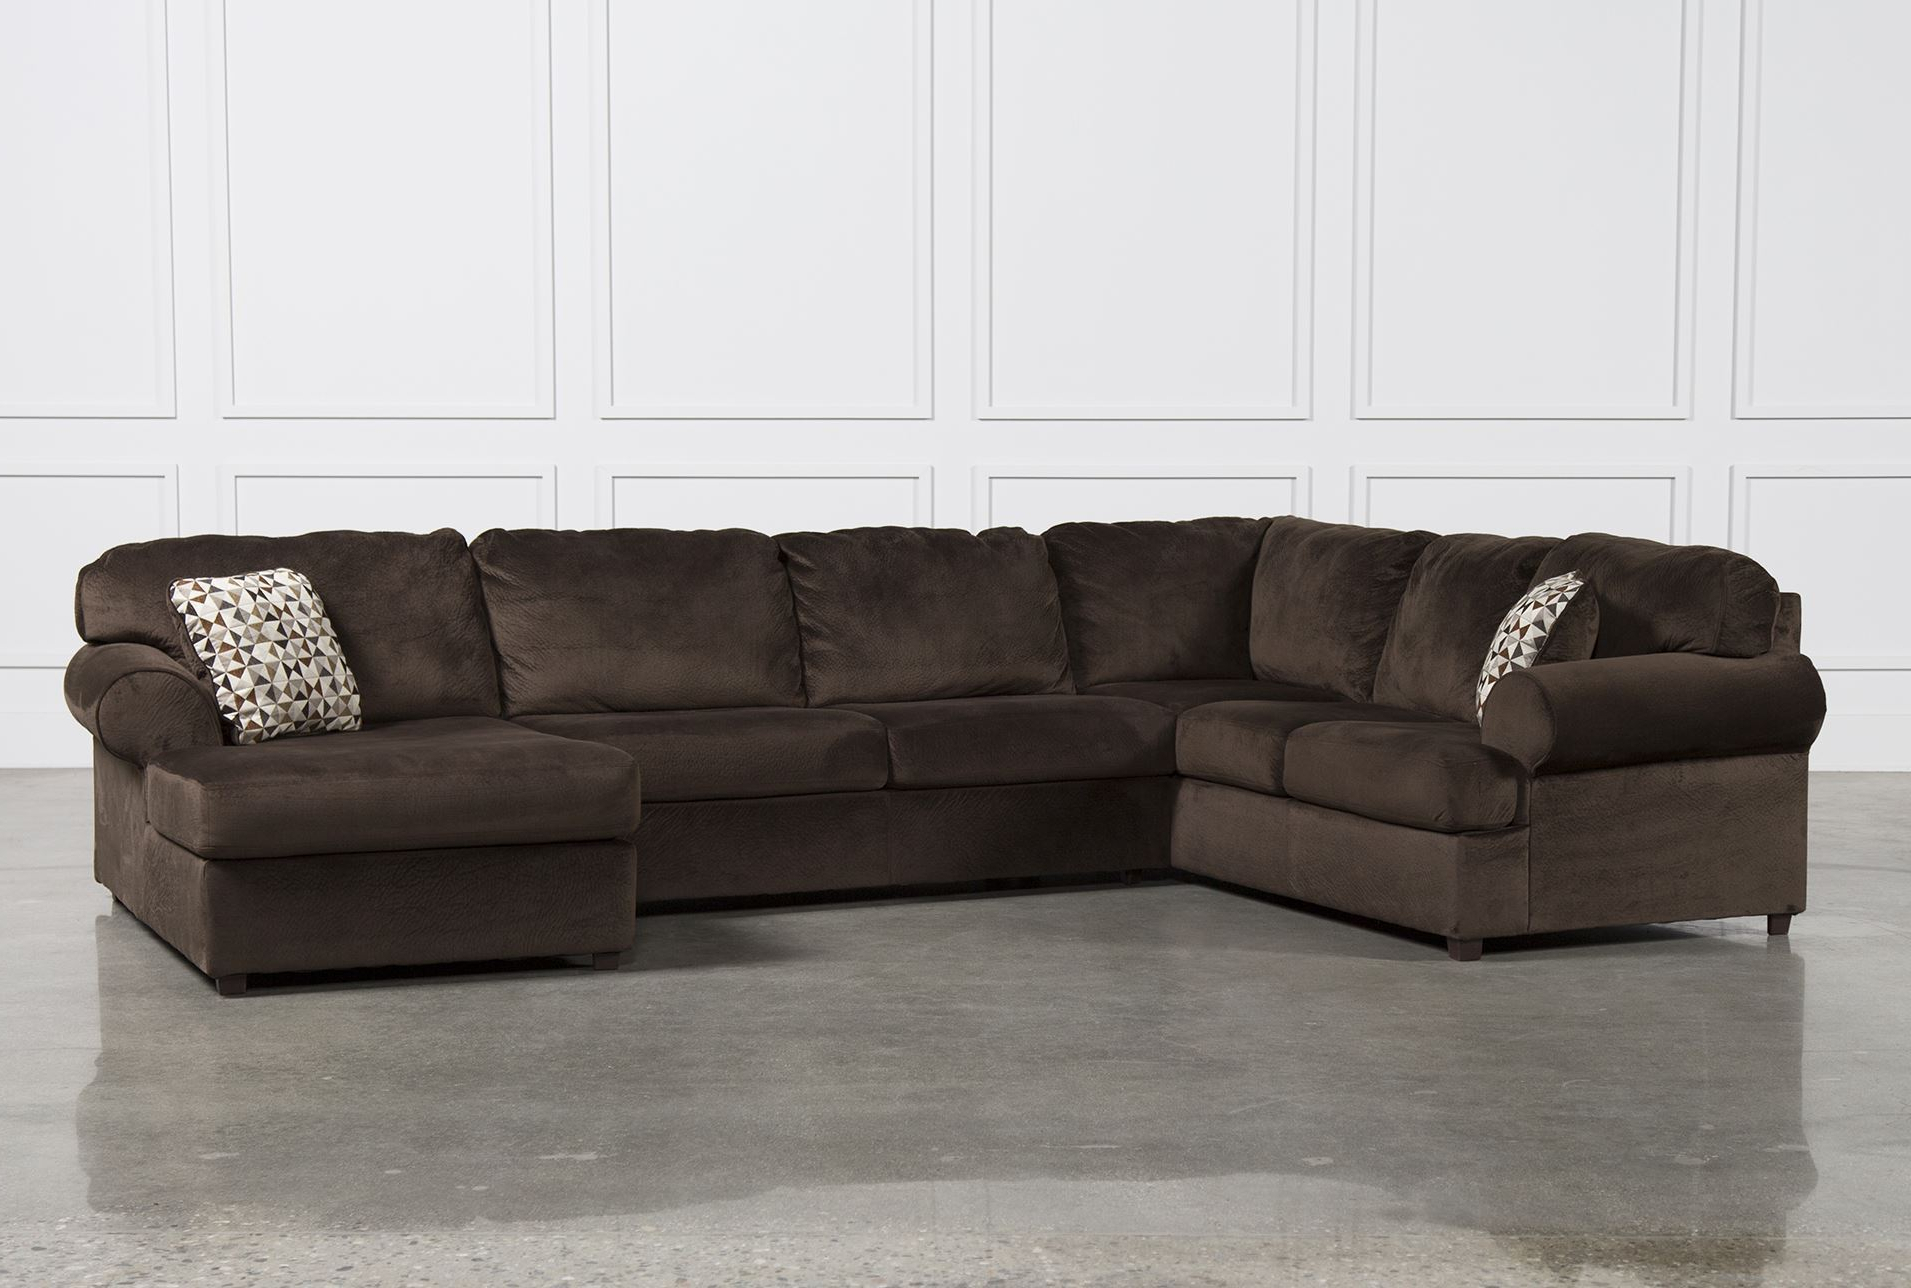 Fashionable Brilliant Ideas Of Raf Chaise With Additional Jessa Place Chocolate Throughout Norfolk Chocolate 3 Piece Sectionals With Raf Chaise (View 3 of 20)